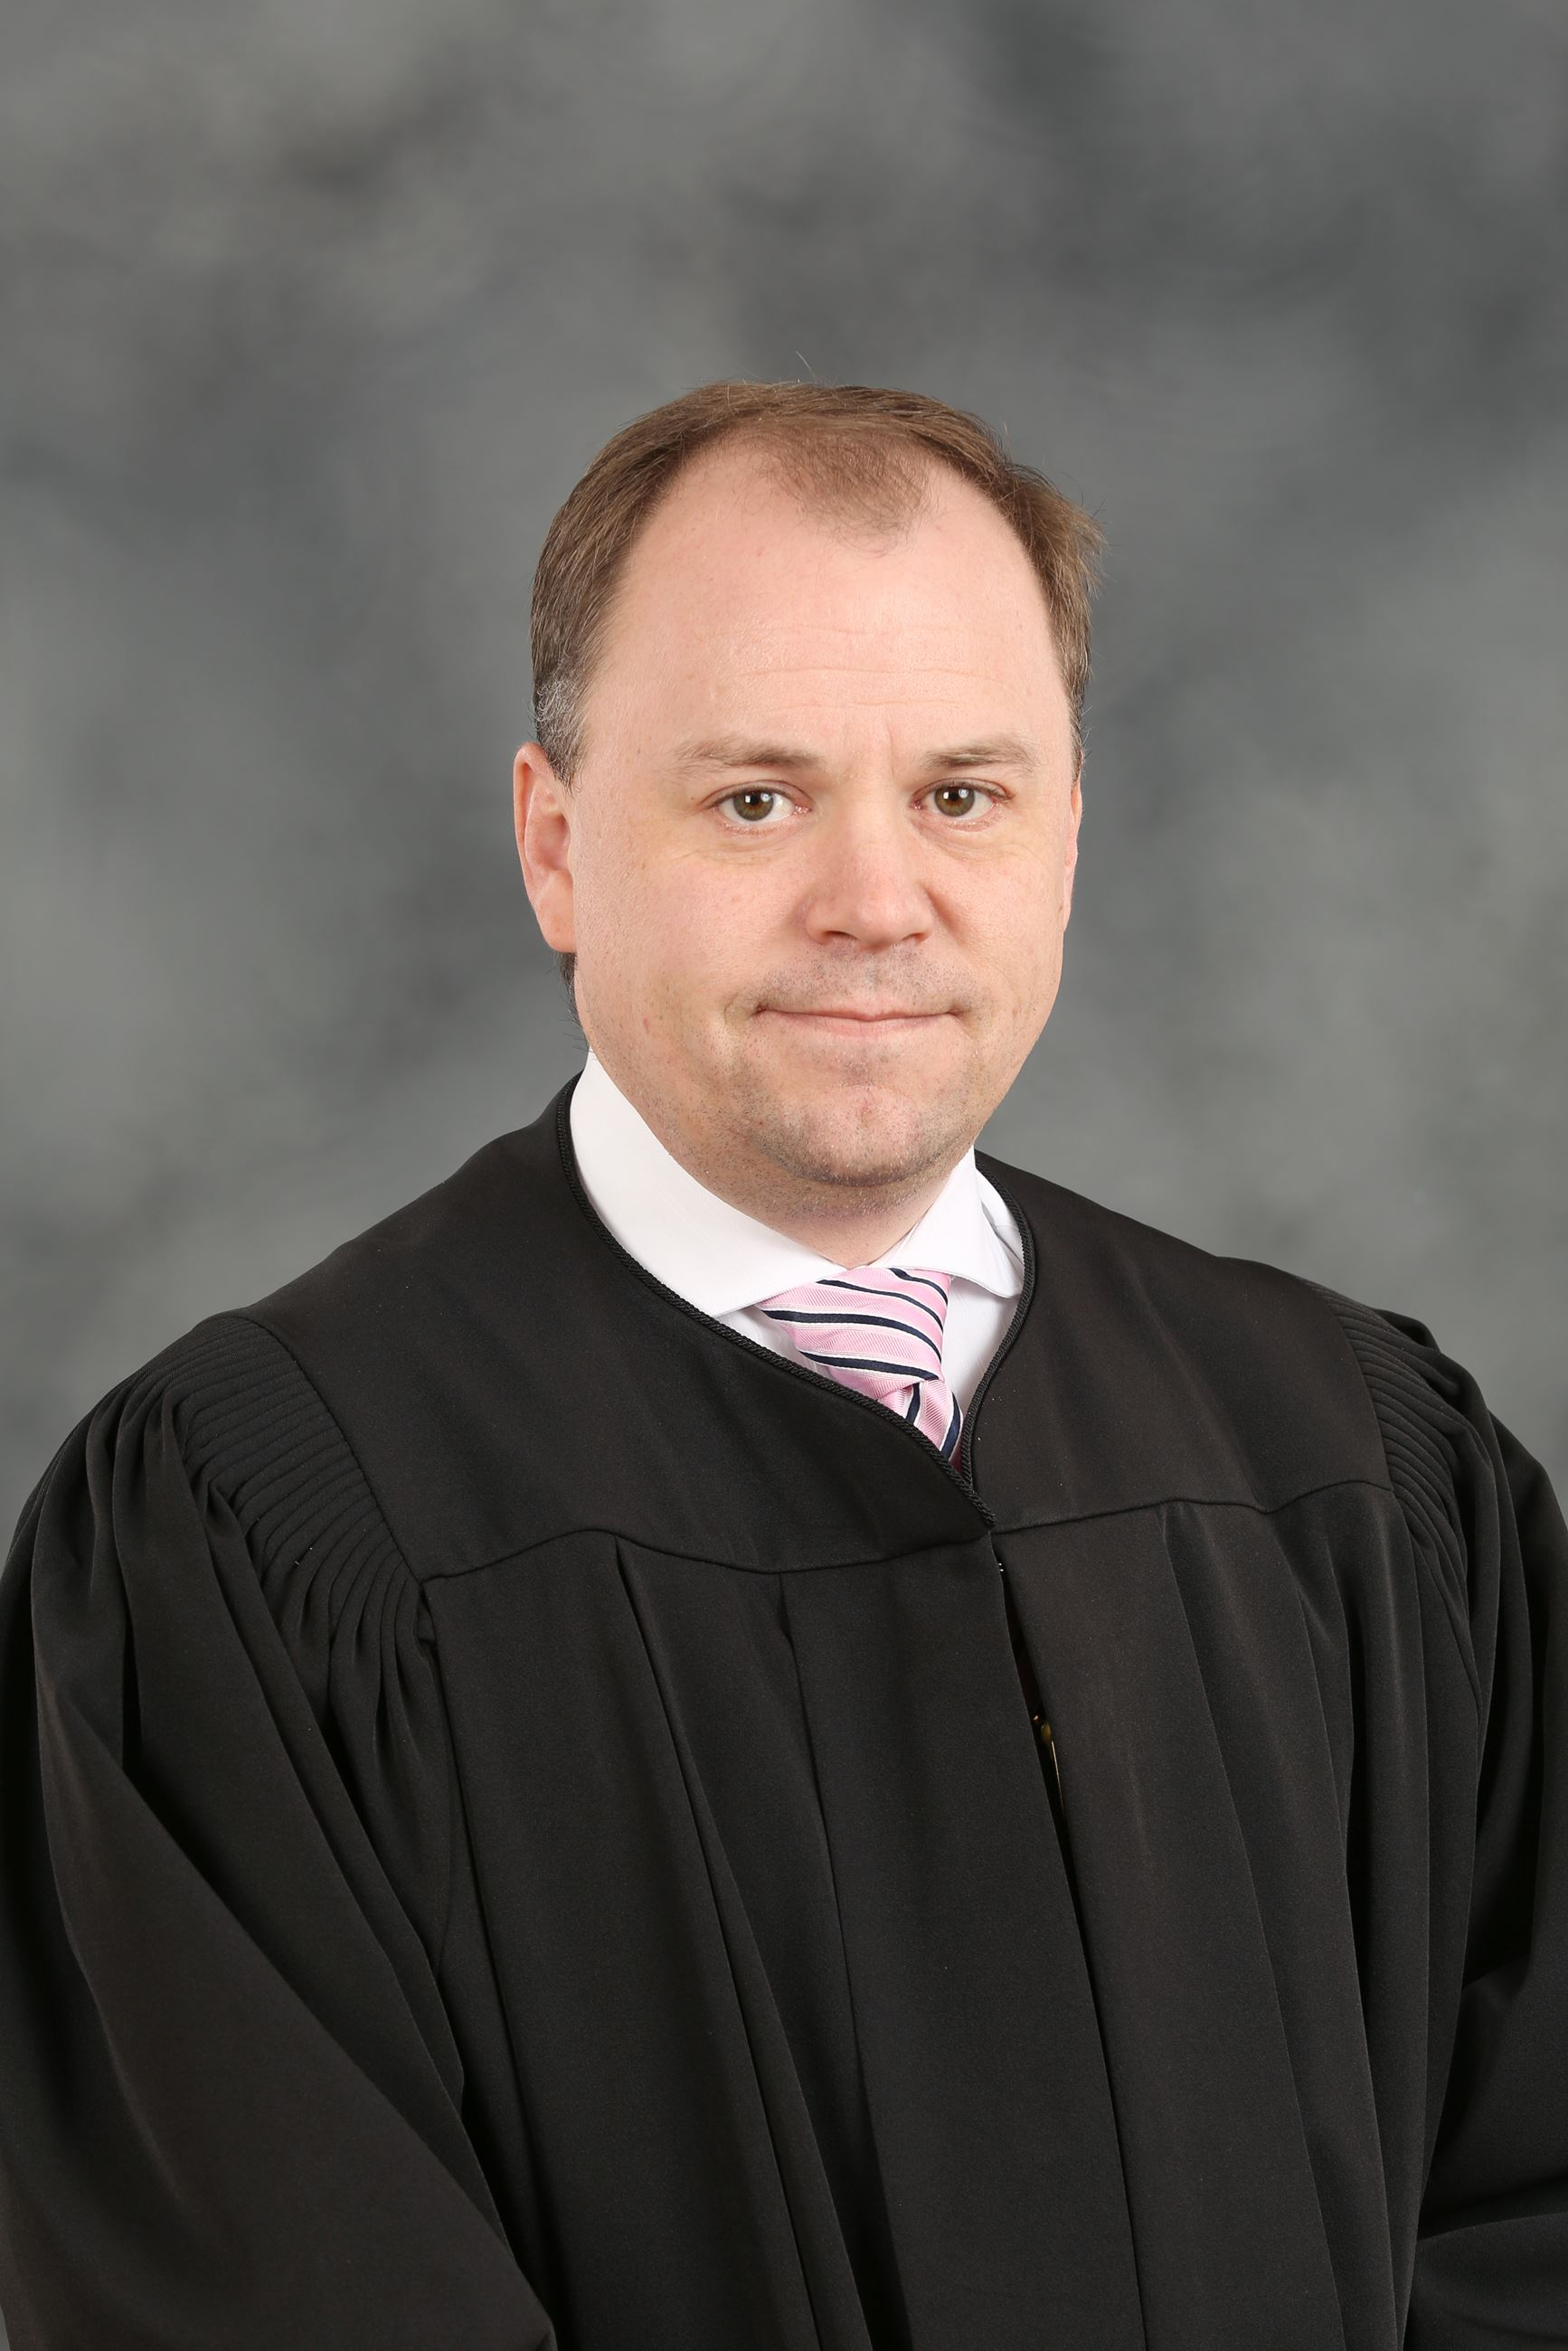 Judge Geoffrey T. Nolan